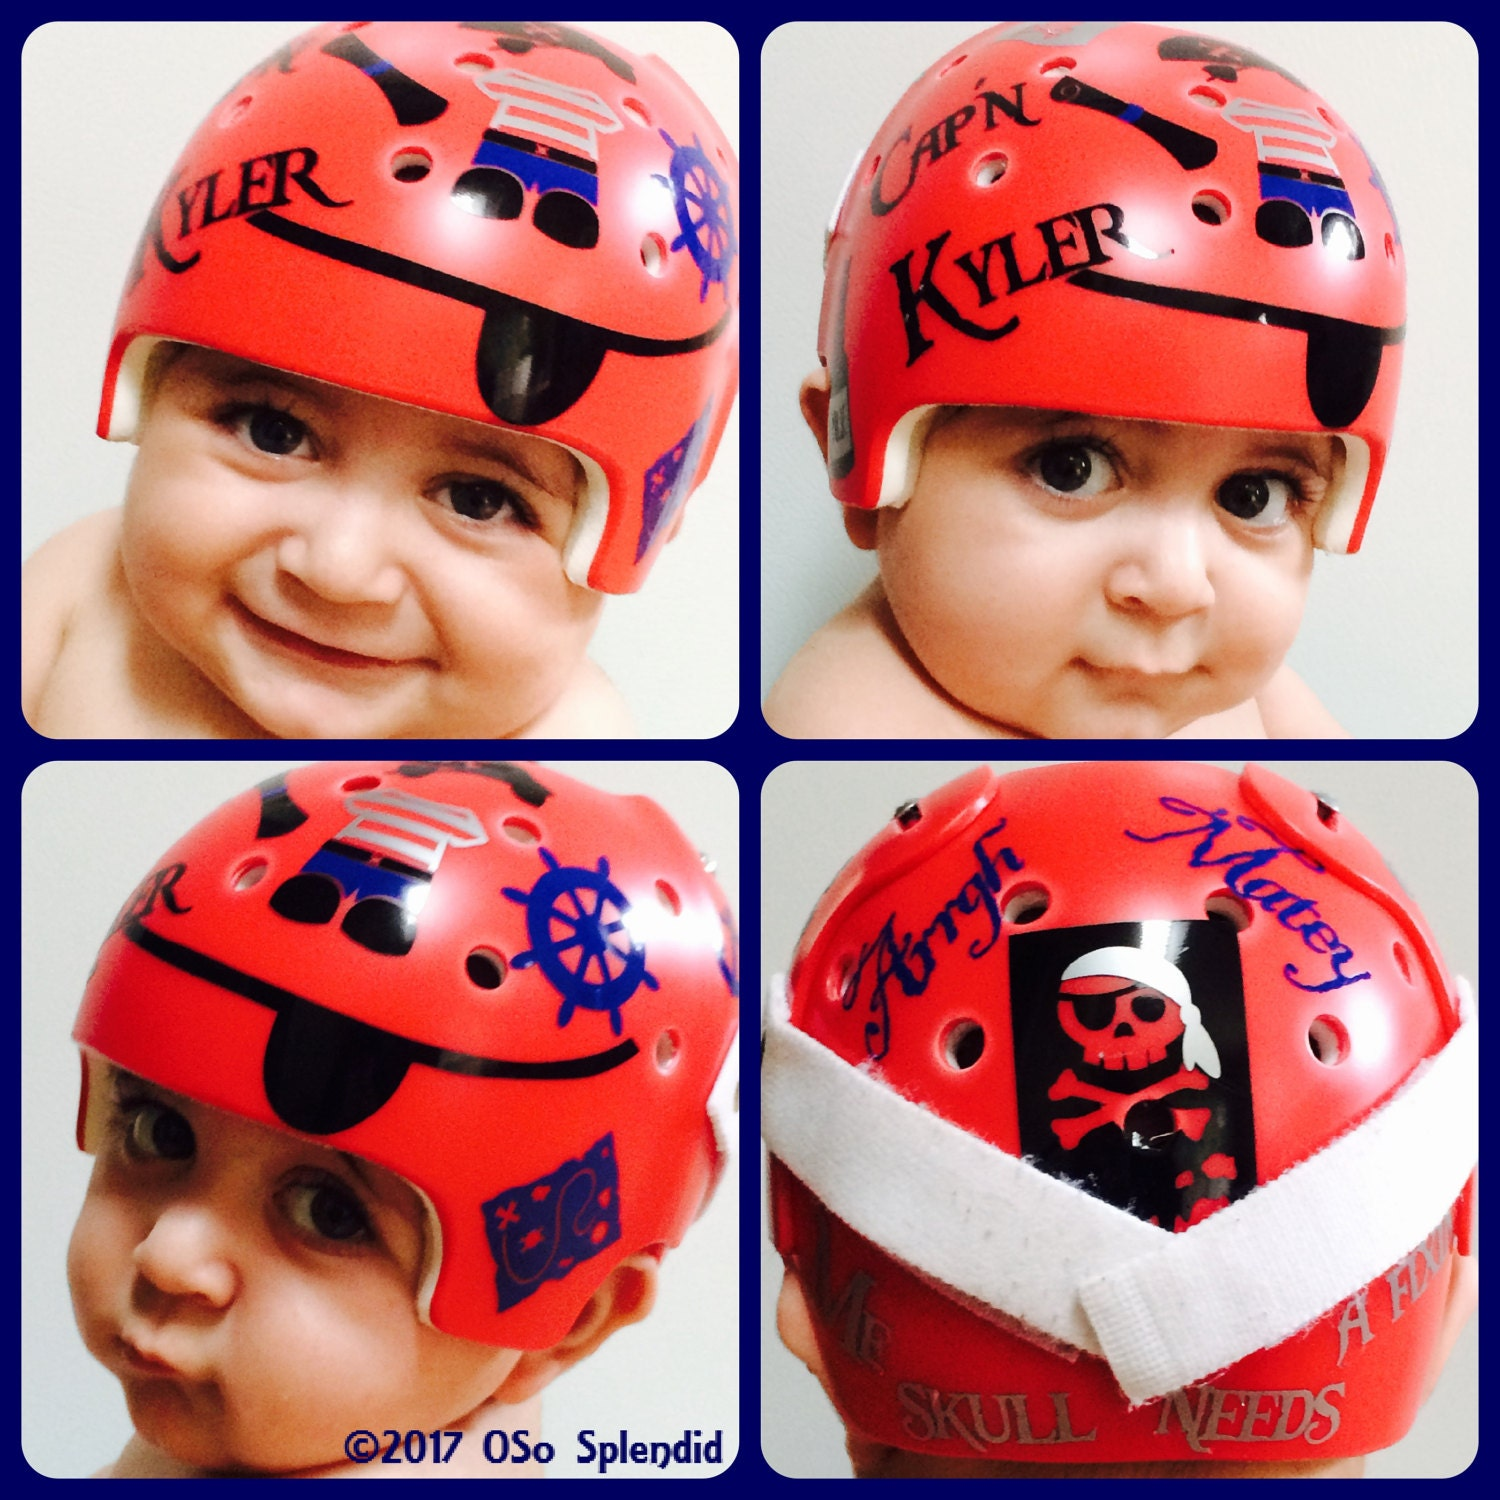 Personalized Cranial Band Pirate Design Me Skull Needs A - Baby helmet decalspersonalized cranial band fairy decals just tinkering